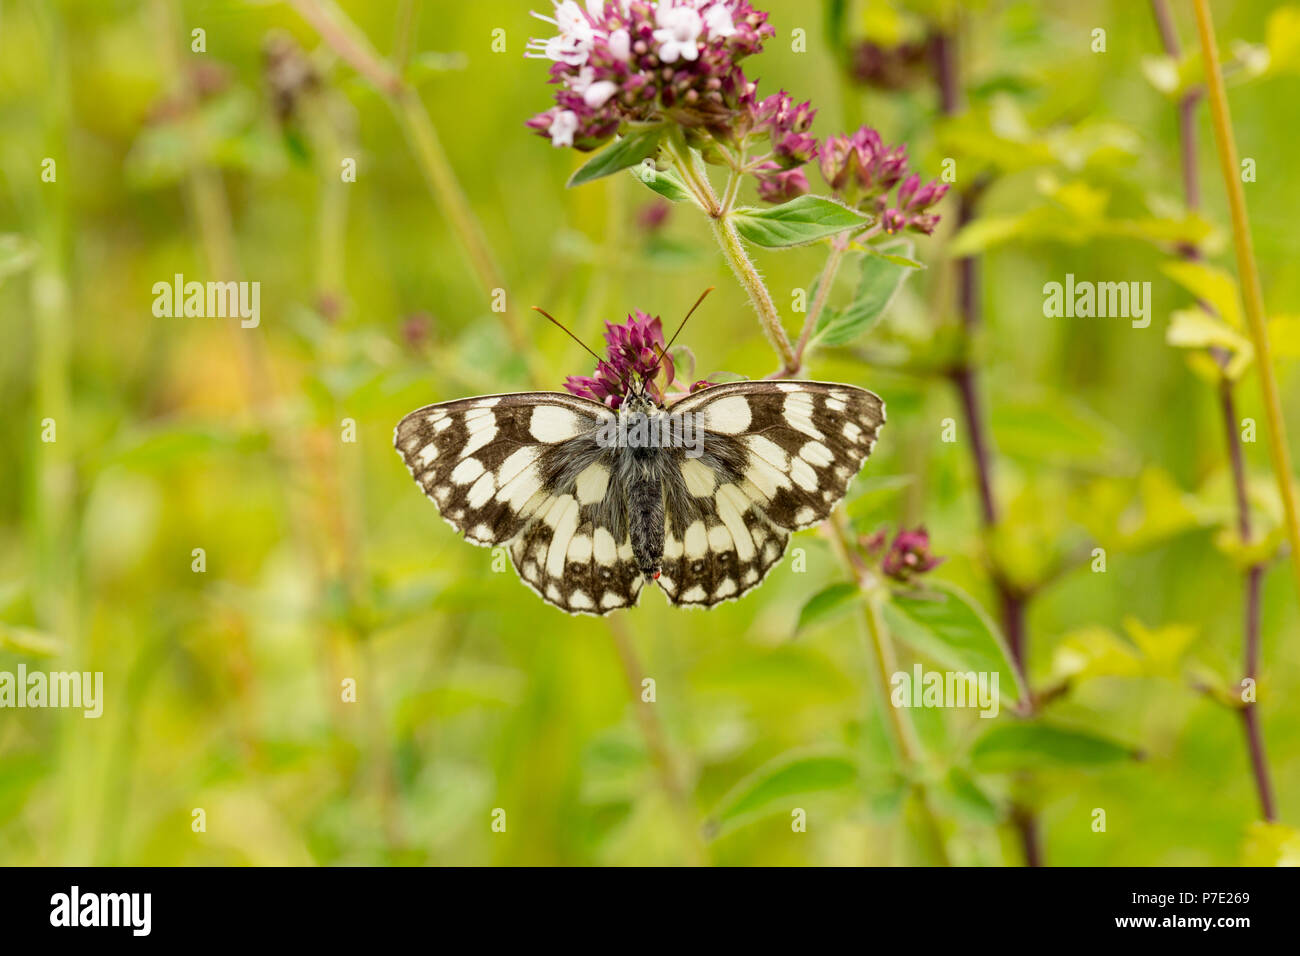 A marbled white butterfly, Melanargia galathea, resting on wild marjoram, Origanum, vulgare, on a humid day at Fontmell Down Nature Reserve Dorset Eng - Stock Image